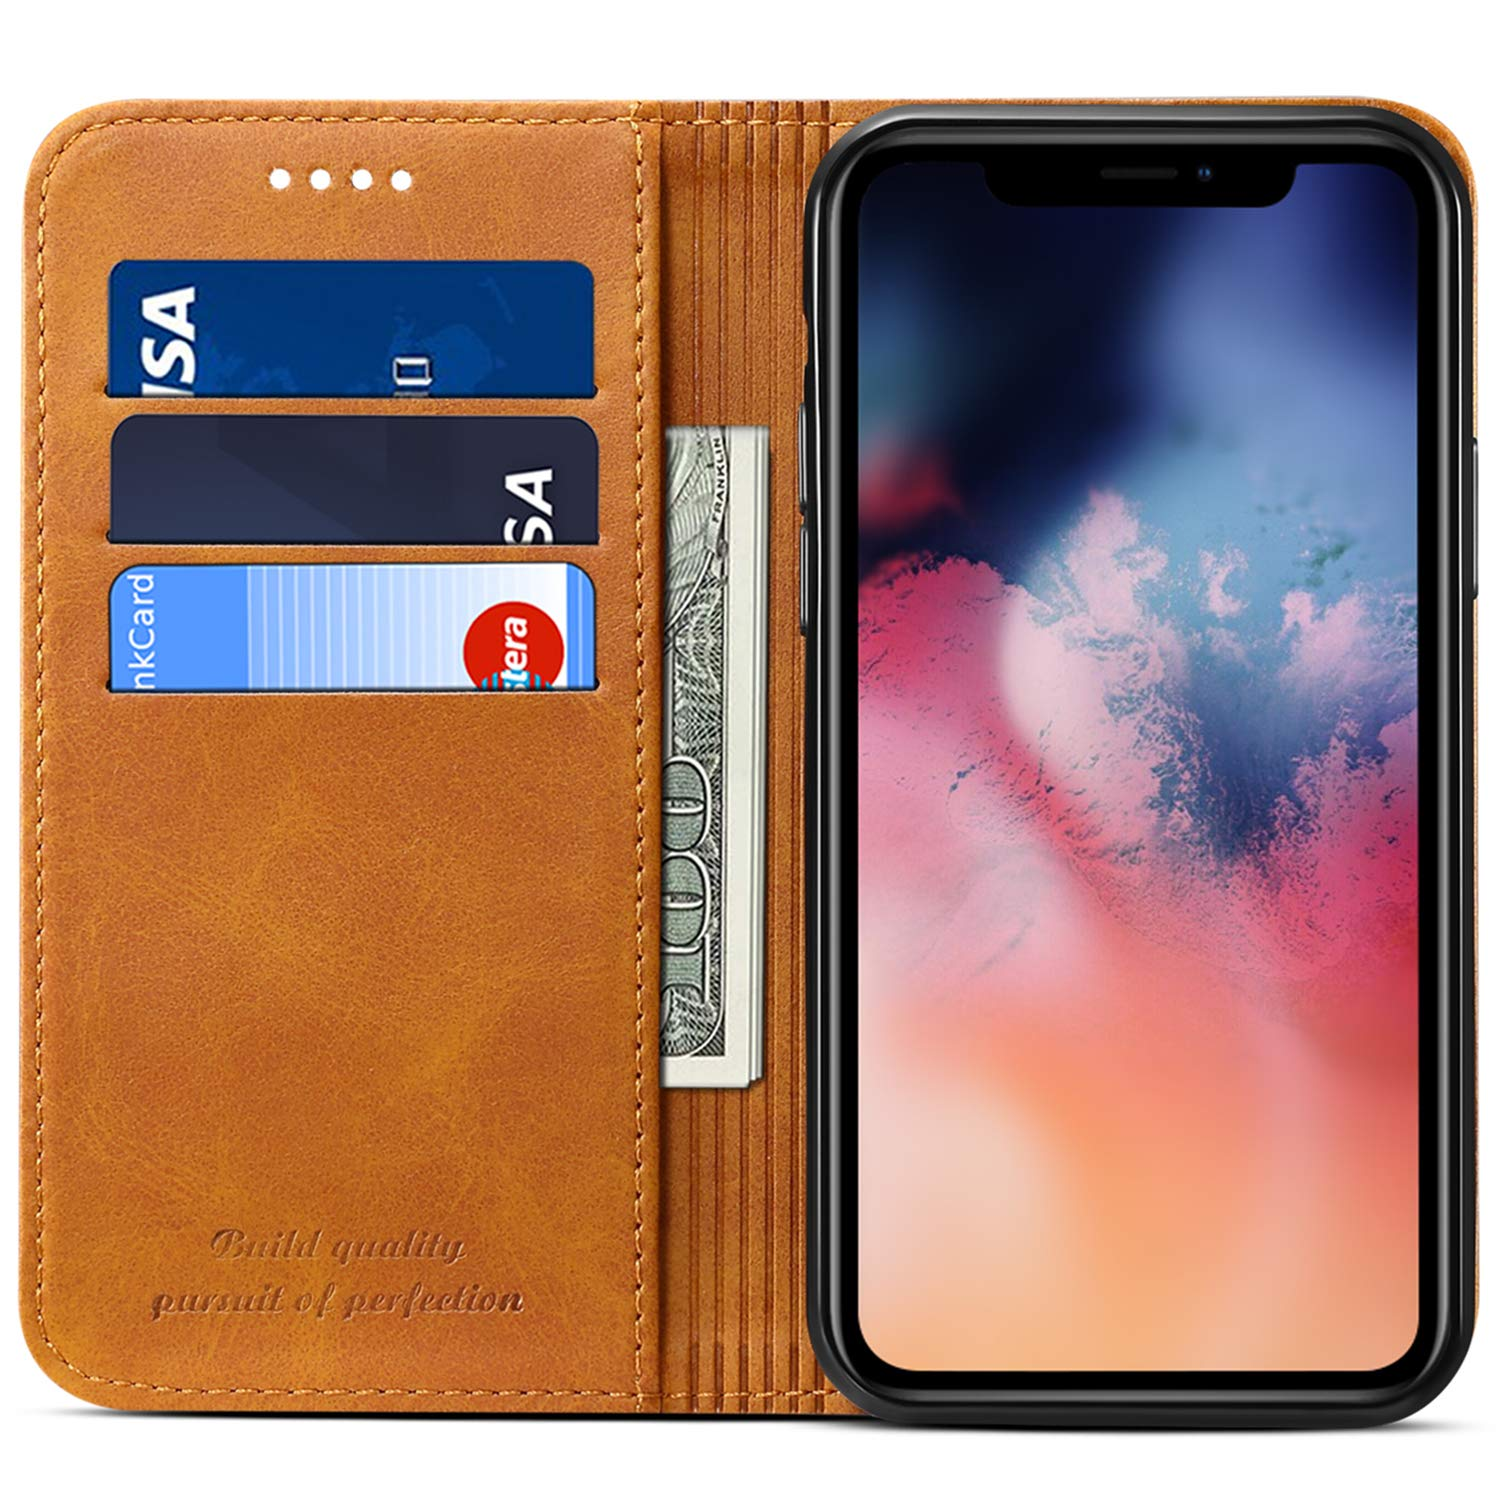 Wallet Case Flip Cover for 2019 iPhone 11 Pro Max, Kickstand Magnetic PU Leather Book Style ID Credit Card Holder Phone Case, 6.5 inches, Khaki